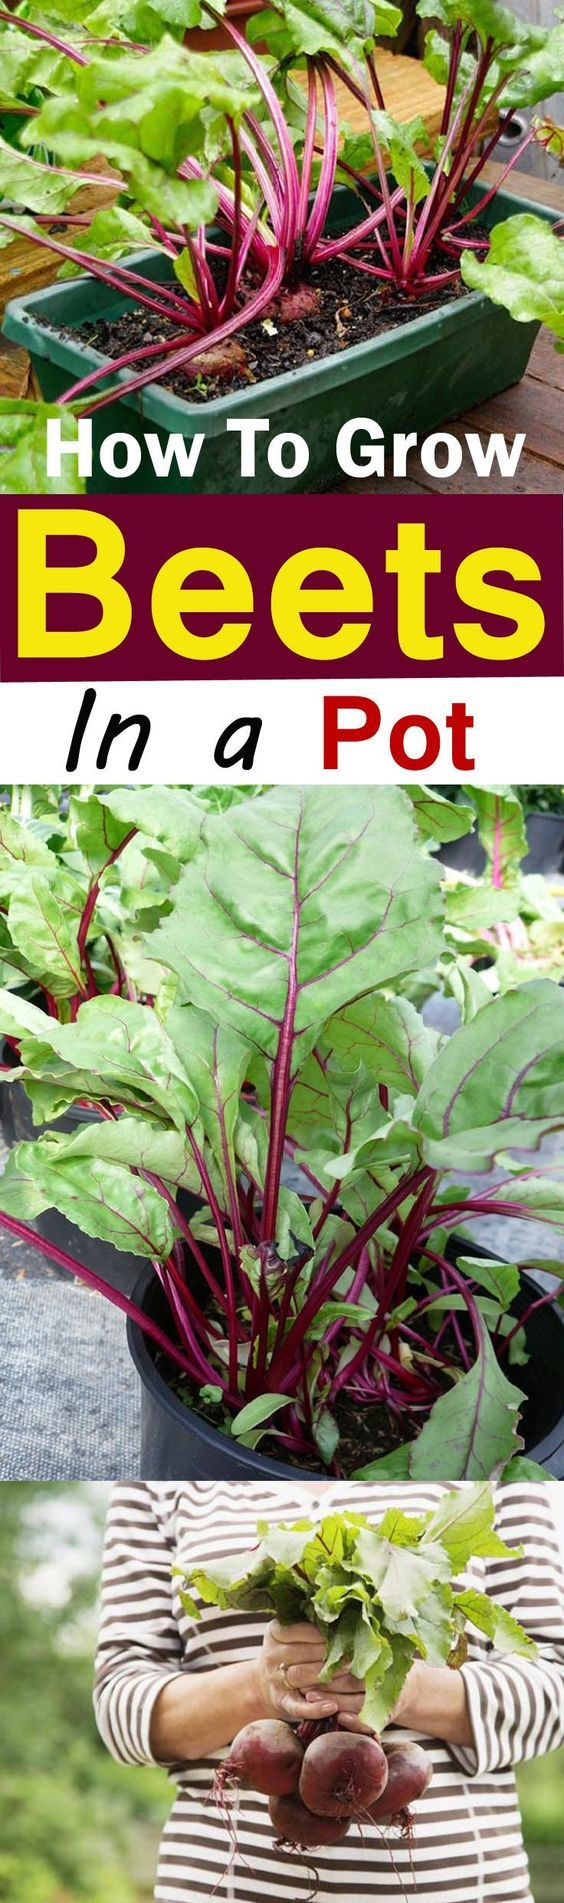 Growing Beets in Containers: How to Grow Beets in Pots – Carla